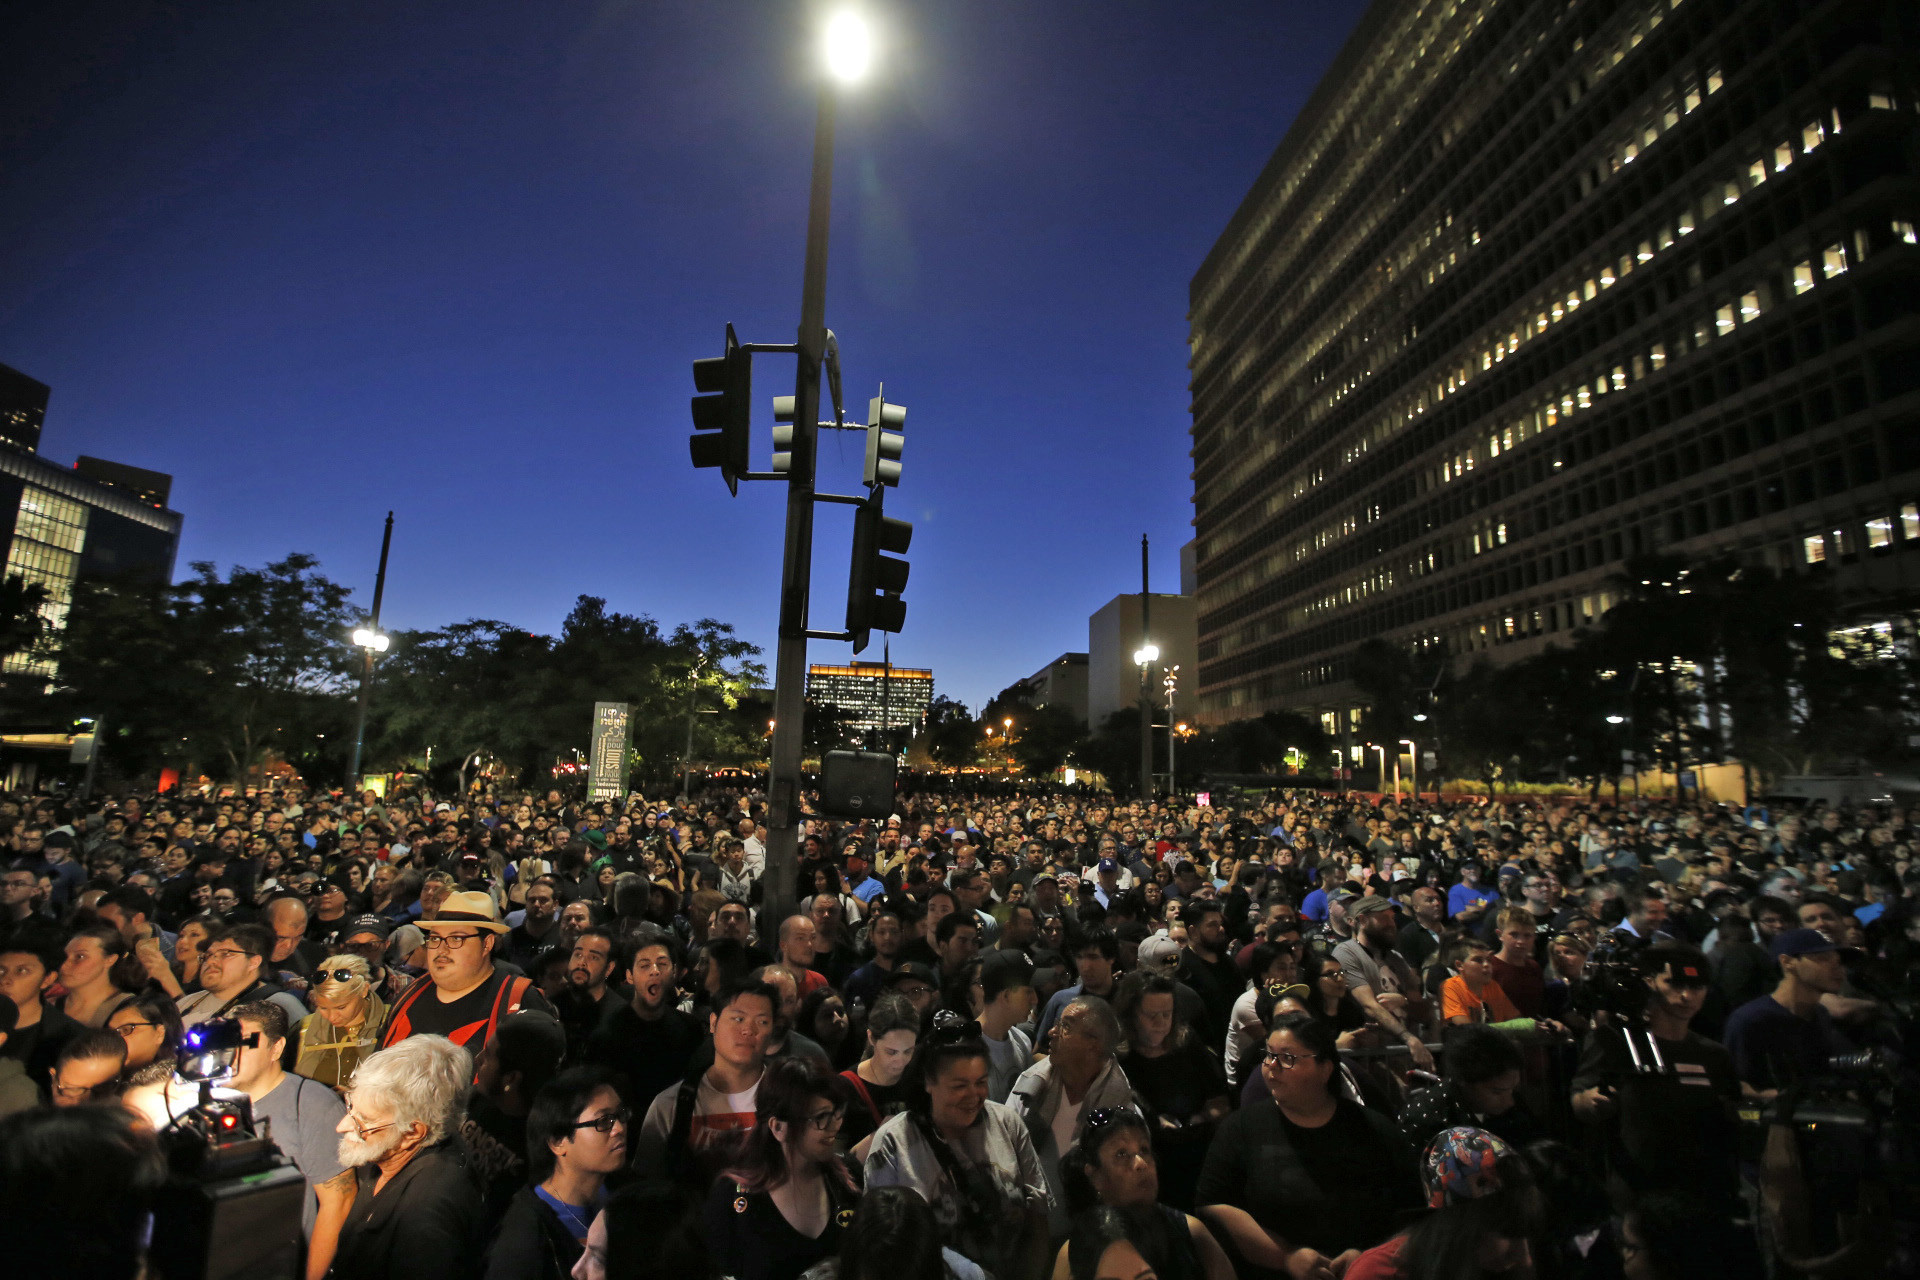 The crowd at the Bat-signal event honoring Adam West. (Francine Orr / Los Angeles Times)